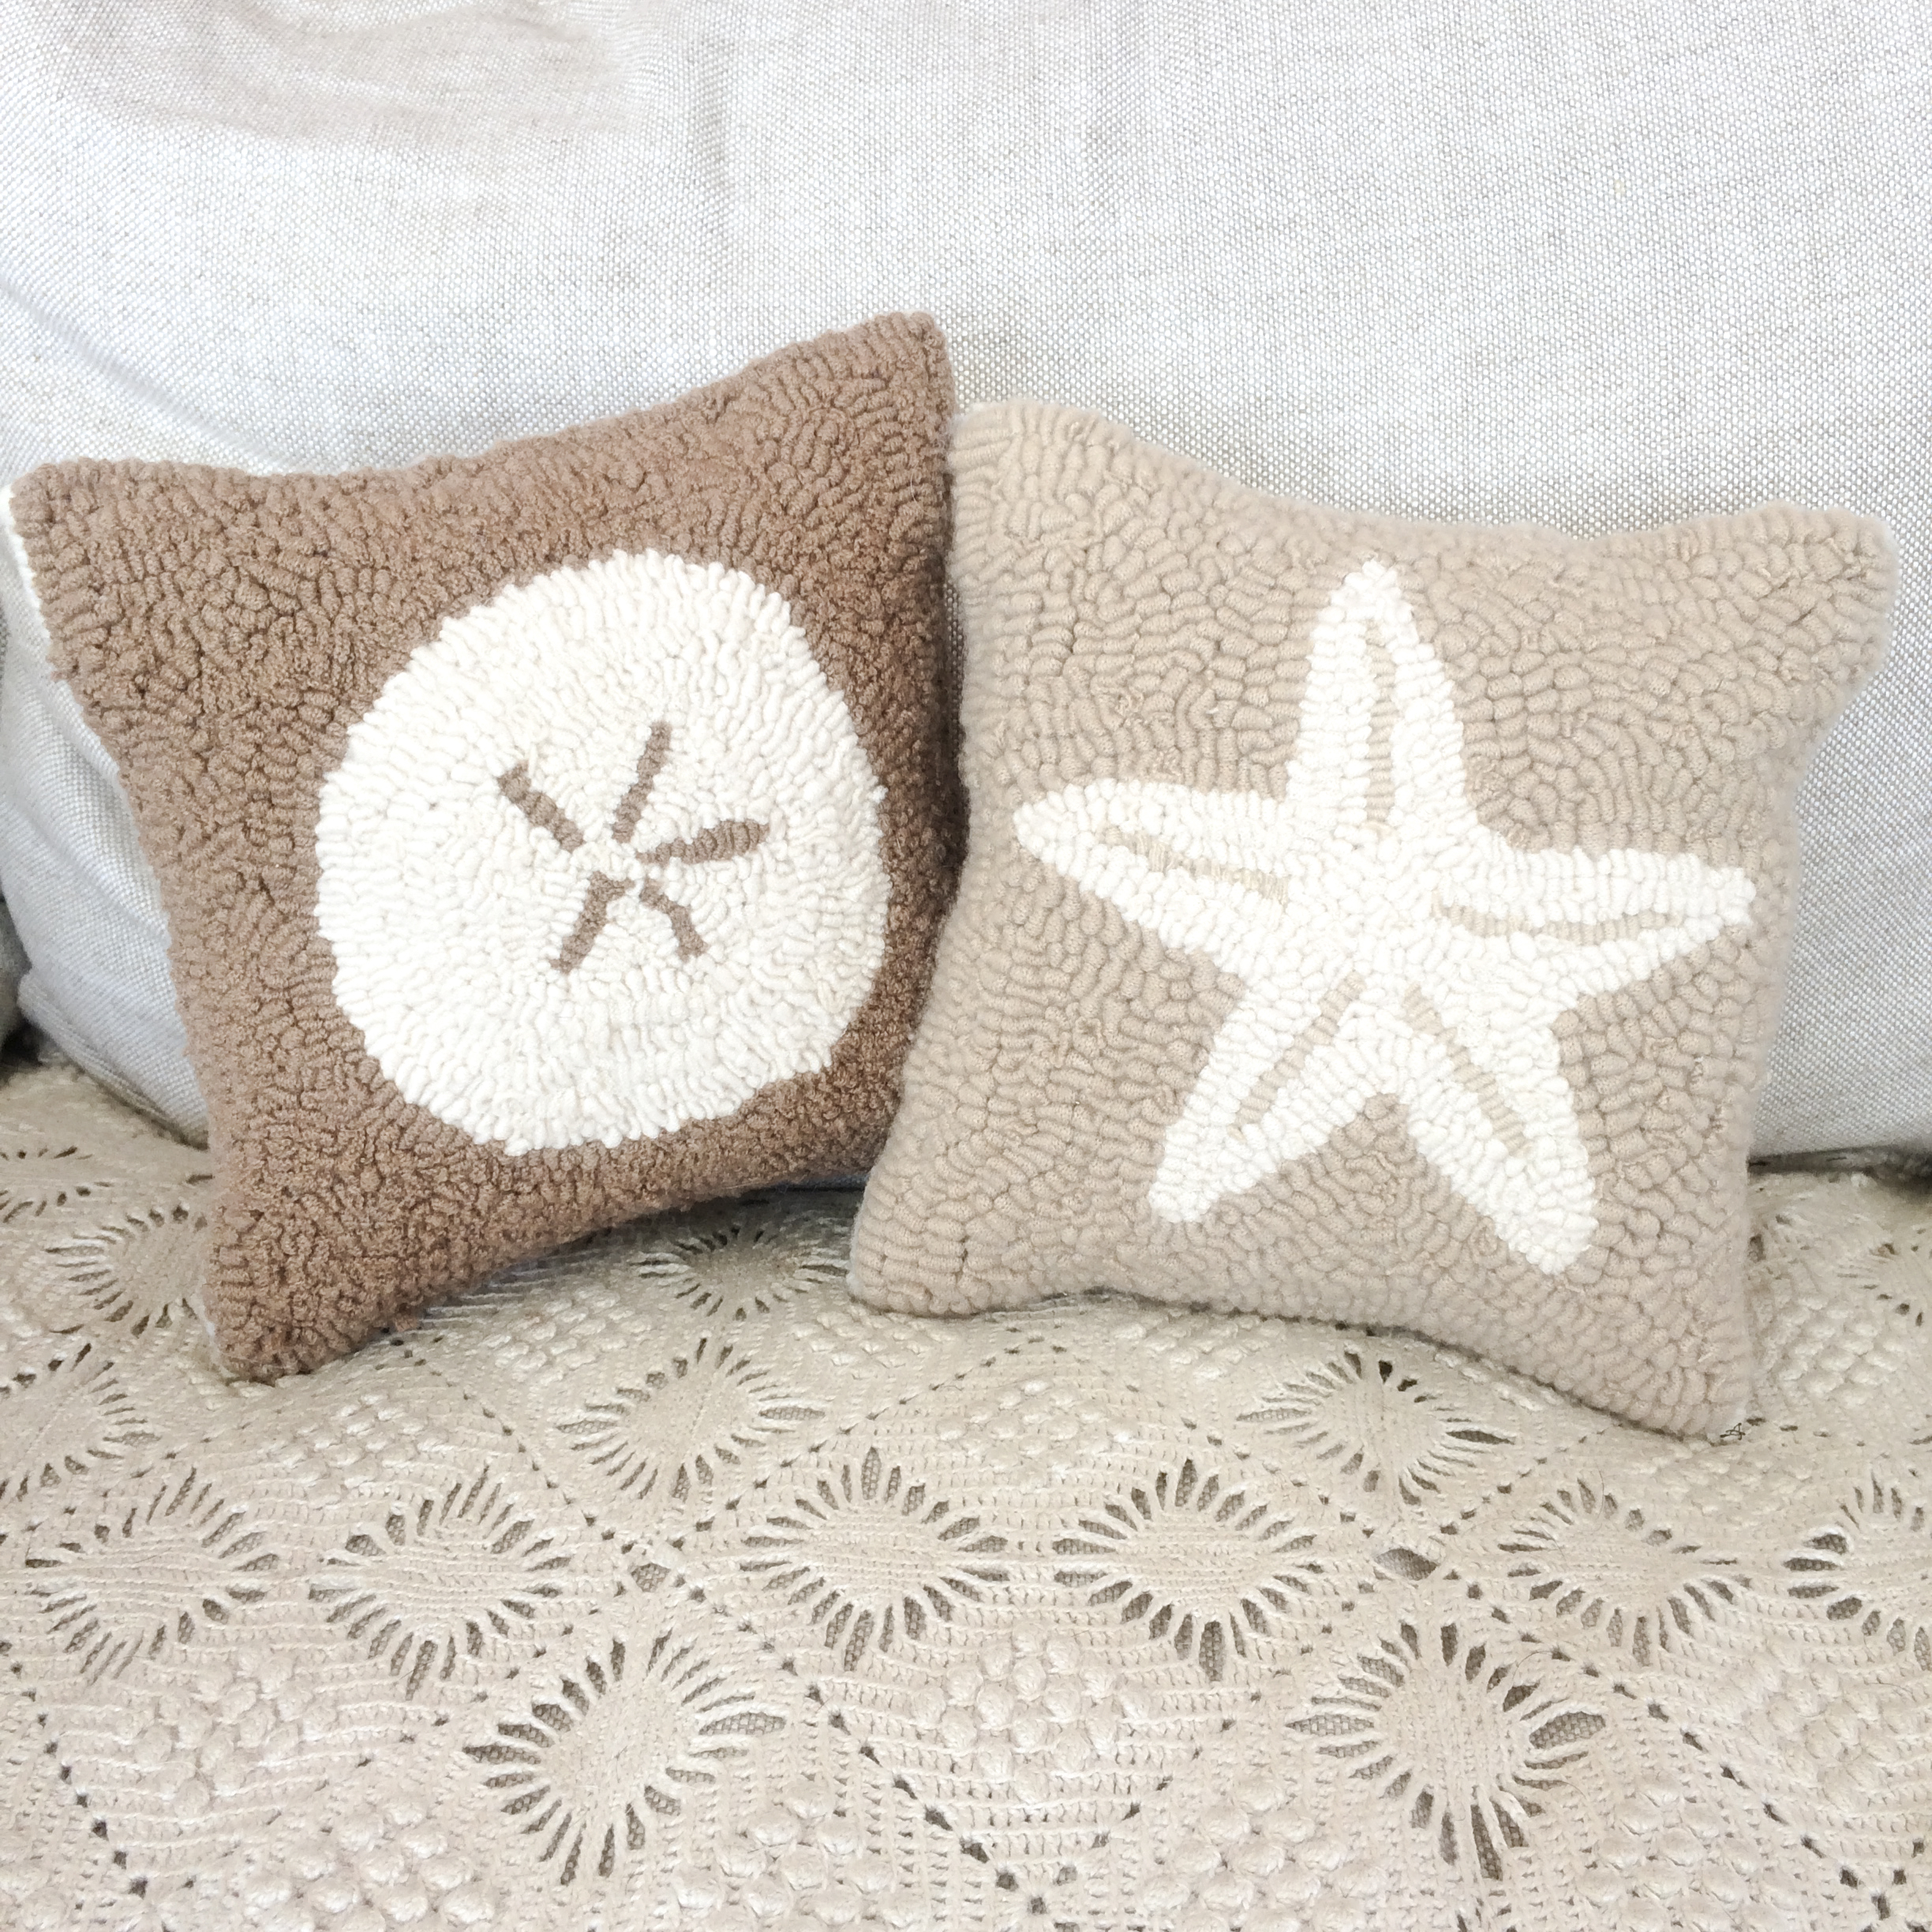 outside diy pillow pillows stitches beach turq doodles